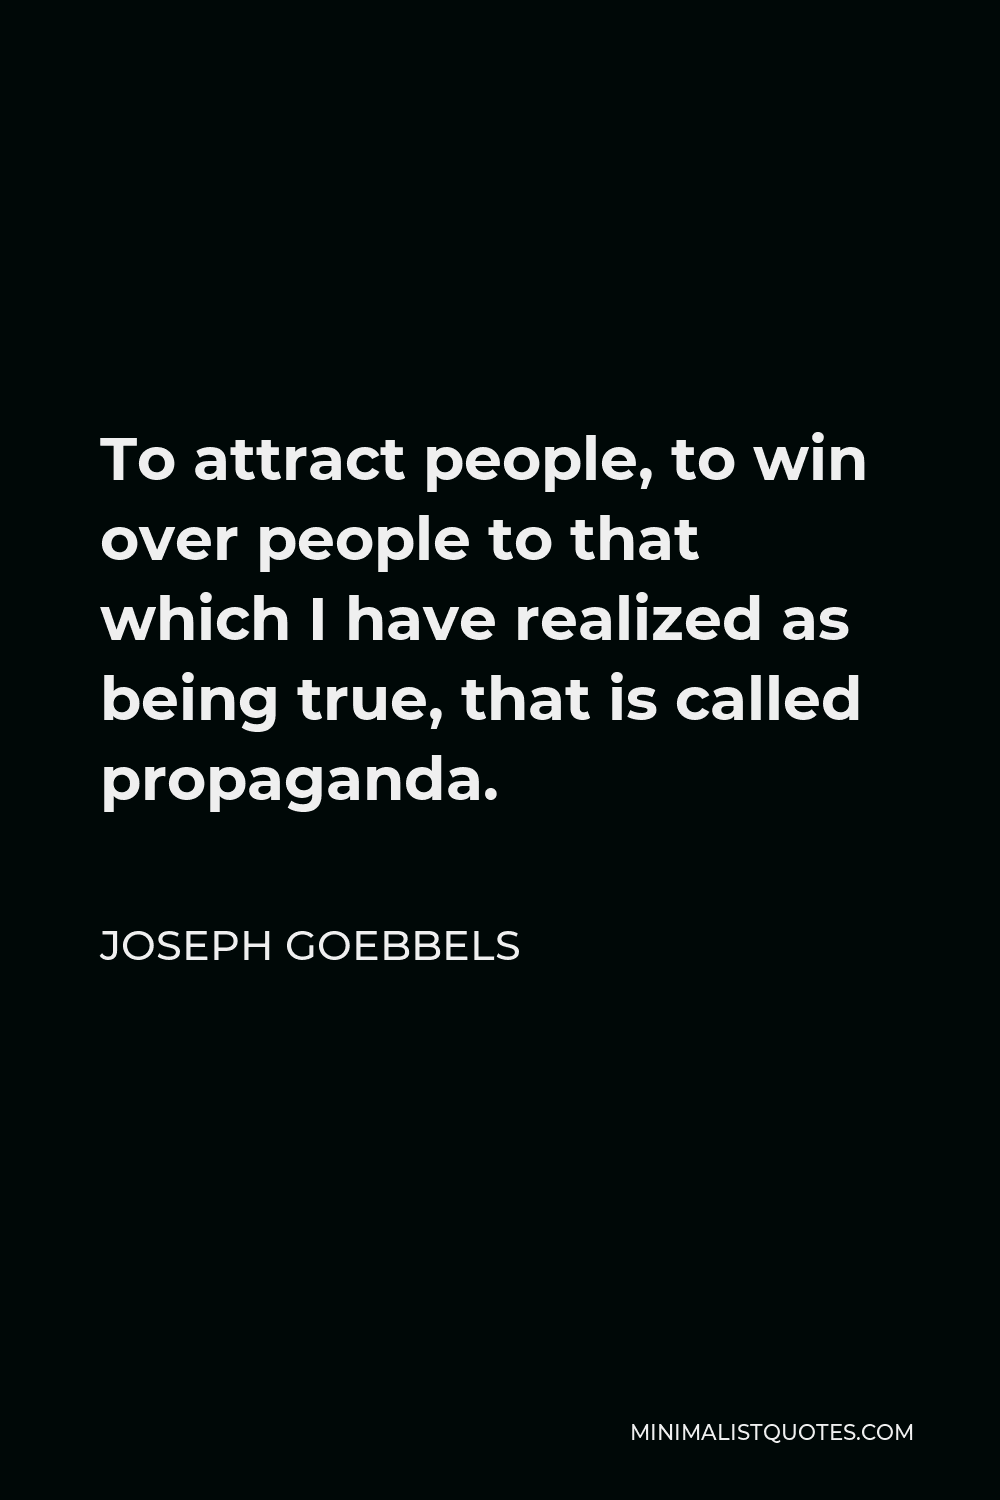 Joseph Goebbels Quote - To attract people, to win over people to that which I have realized as being true, that is called propaganda.